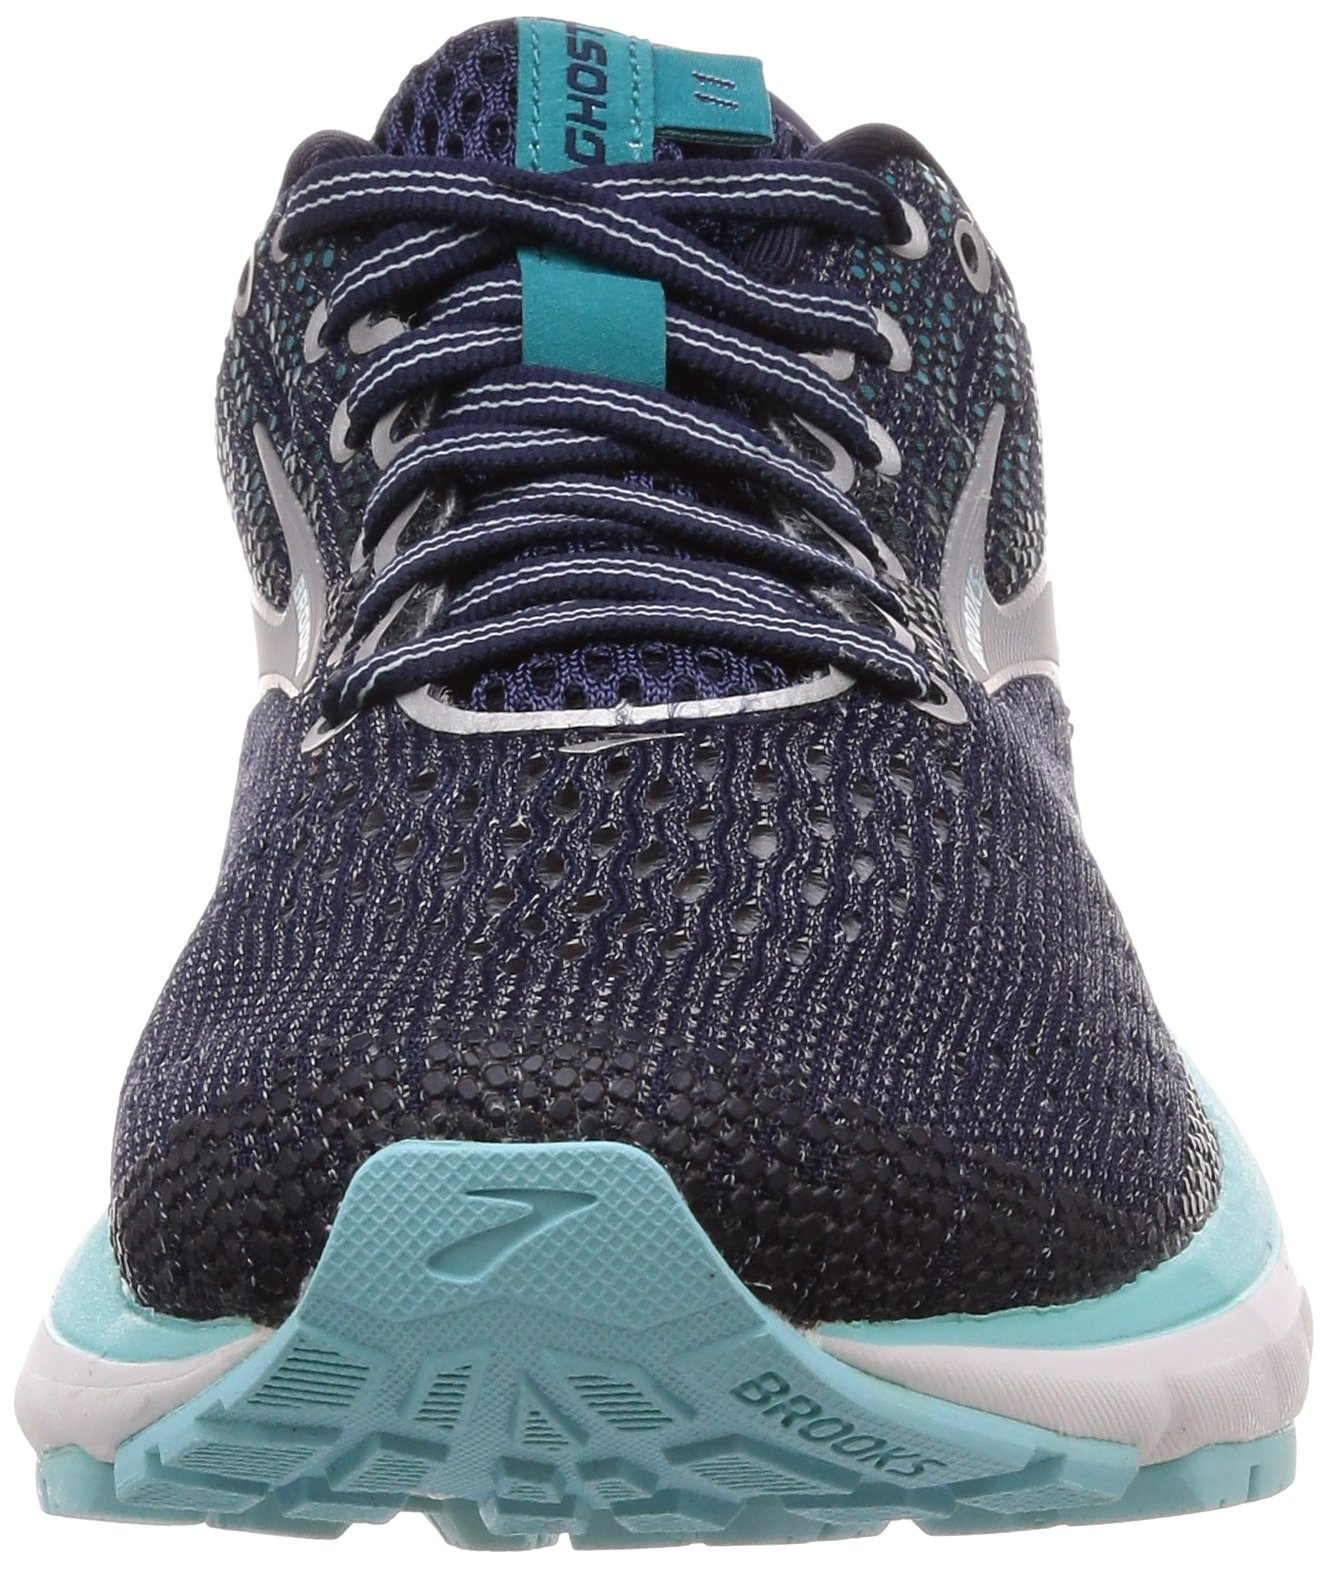 Brooks Womens Ghost 11 Running Shoe - Navy/Grey/Blue - D - 5.5 by Brooks (Image #4)